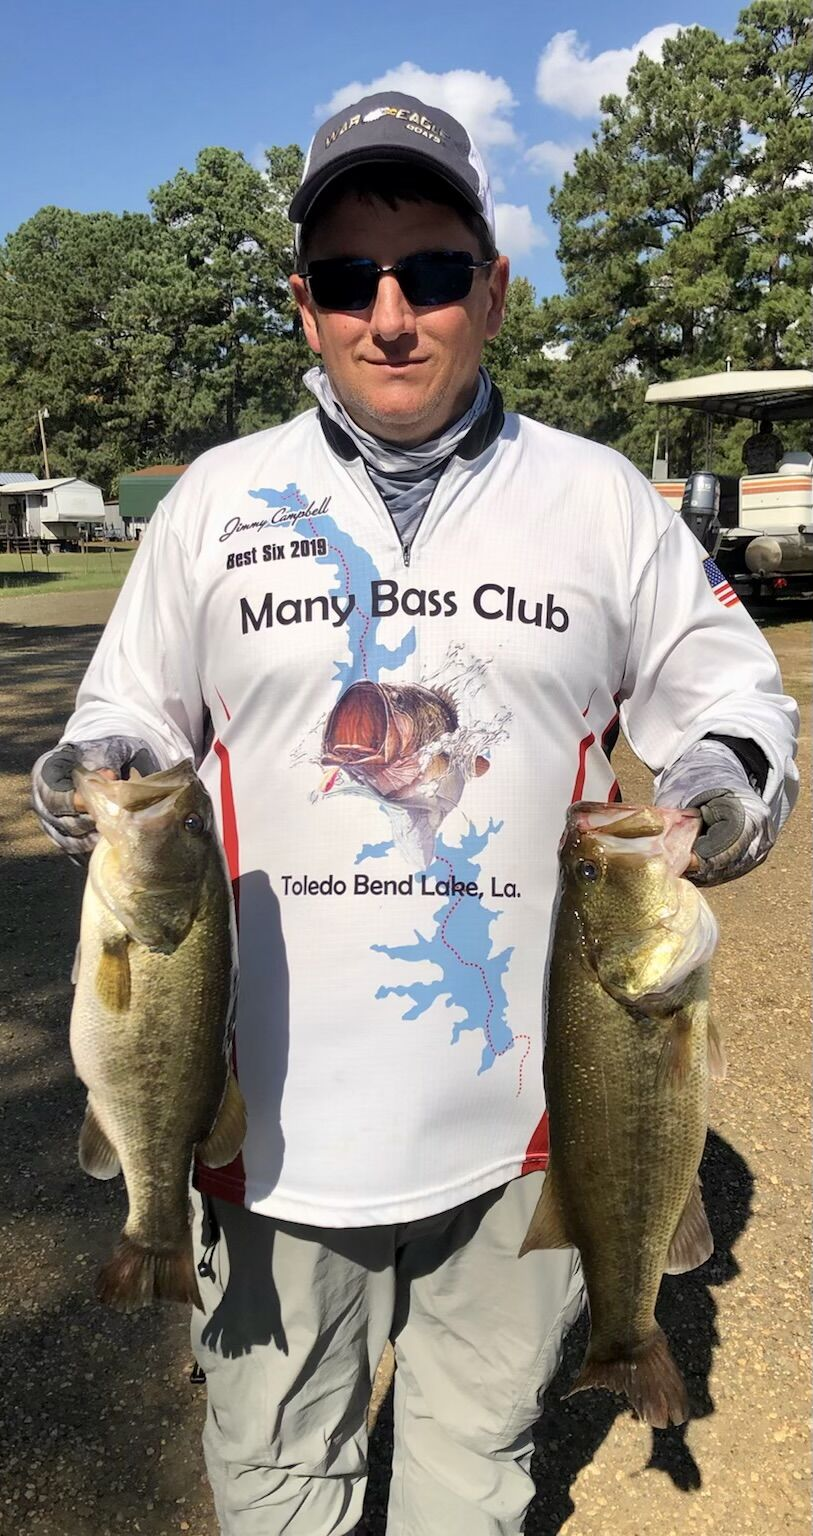 Gary Moore came in 2nd place with 12.92 pounds